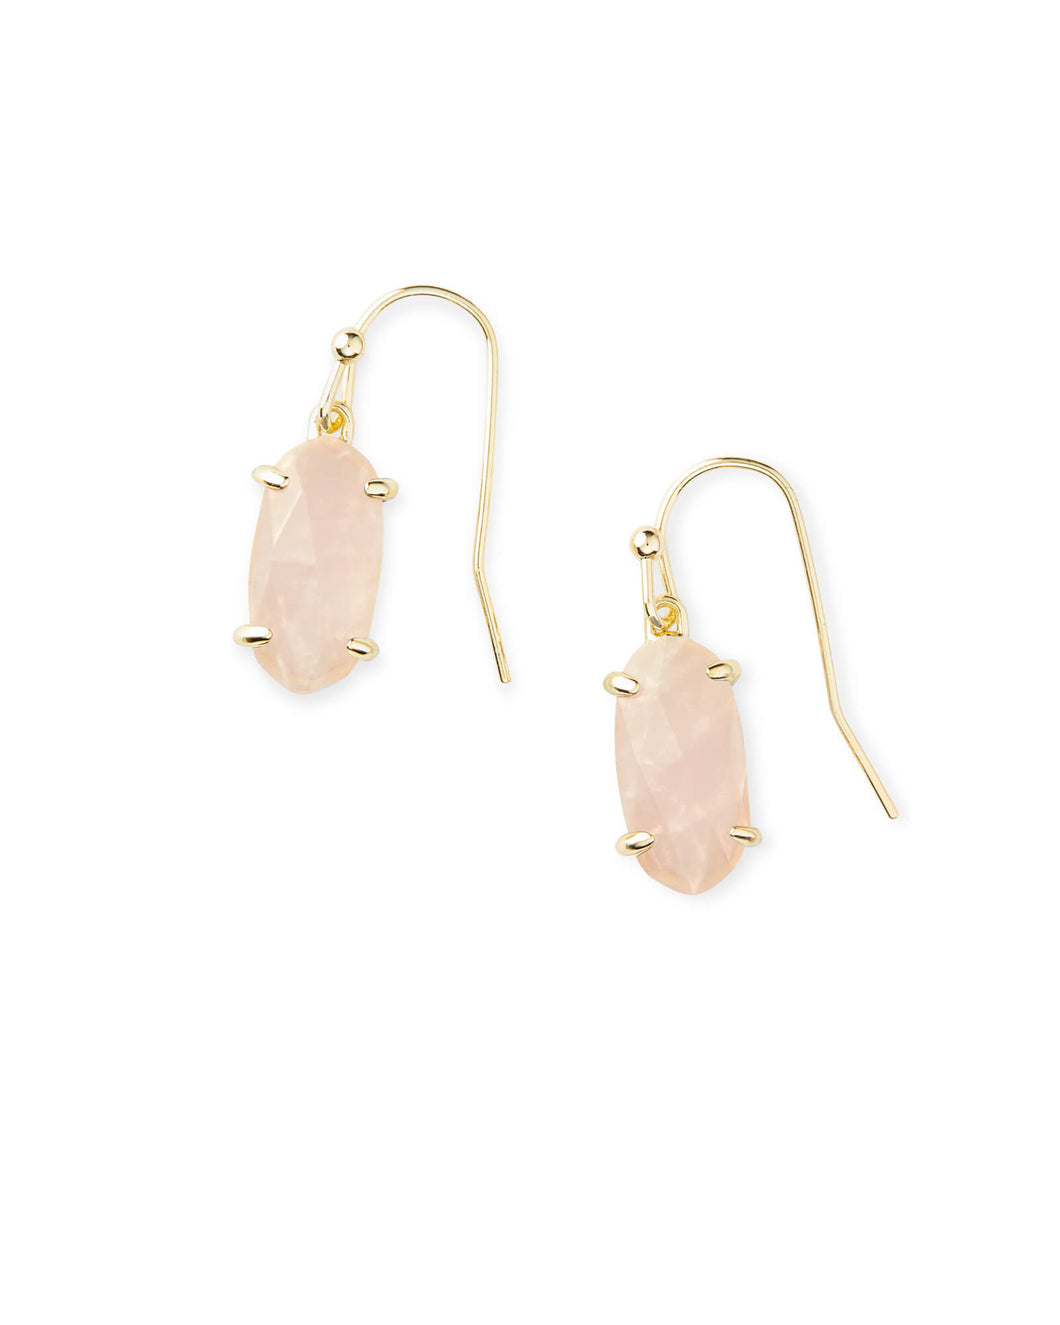 Kendra Scott Lemmi Gold Drop Earrings in Rose Quartz